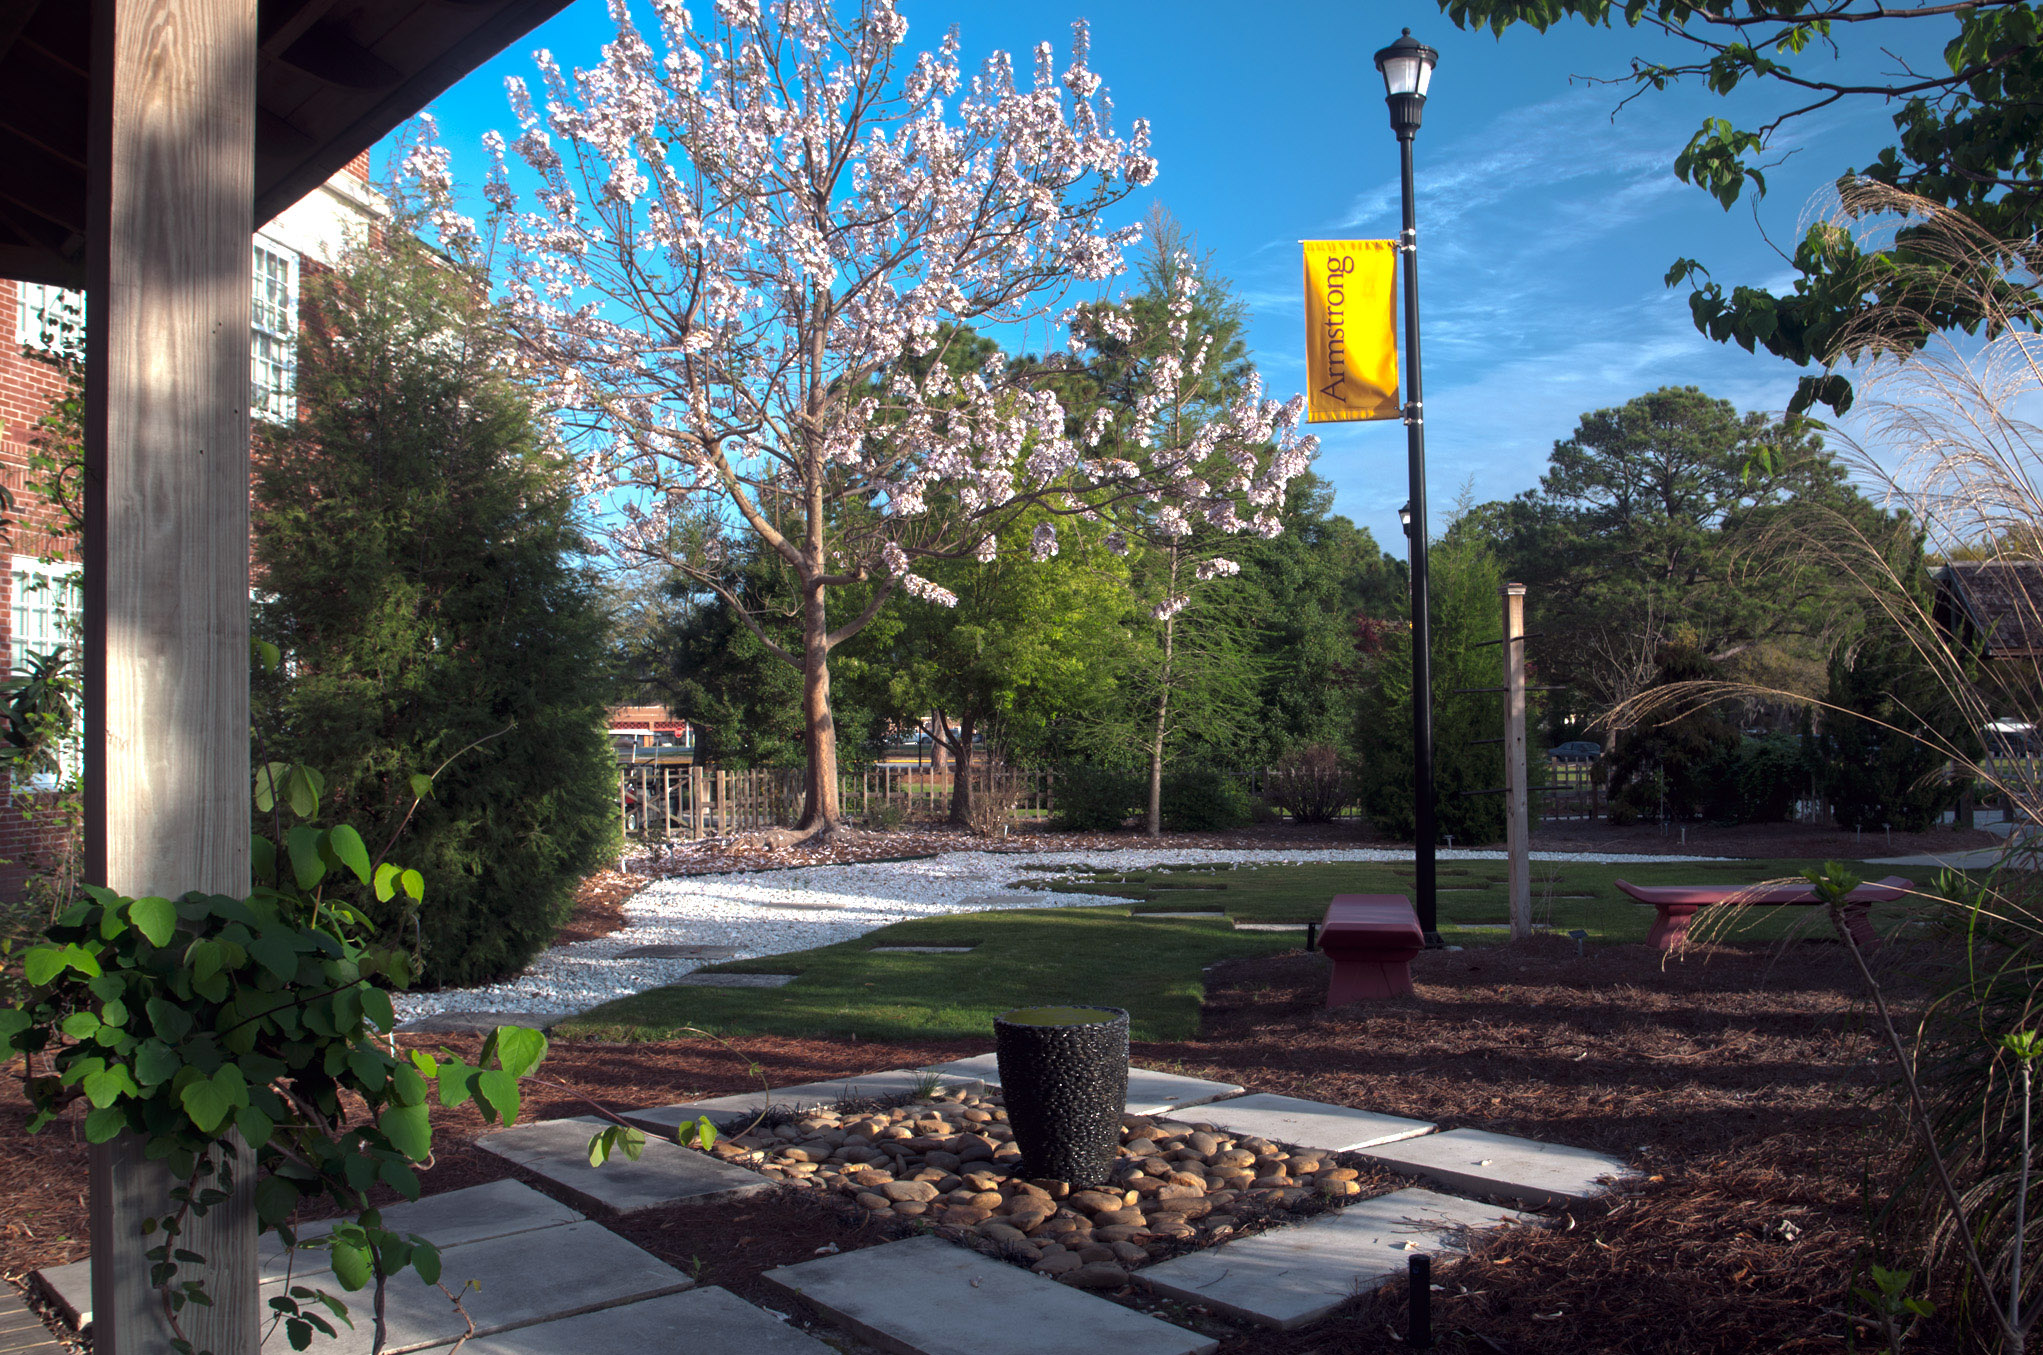 Armstrong State University >> Armstrong State University Arboretum Wins Savannah Tree